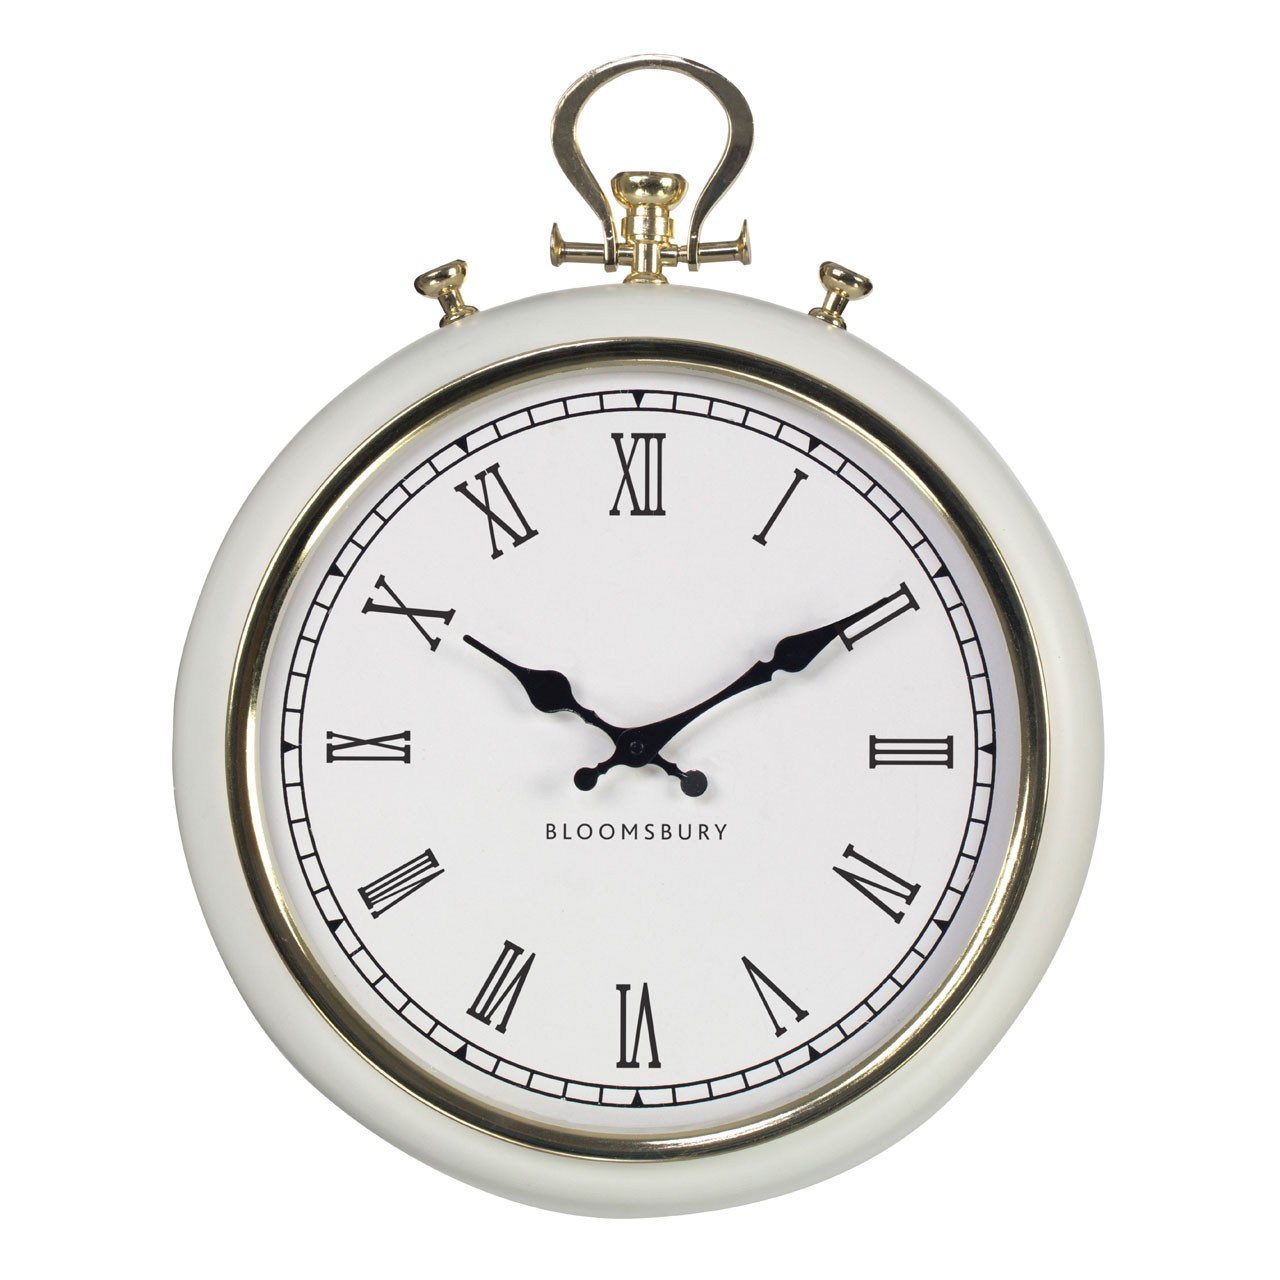 Prime Furnishing Pocket Style Wall Clock - White/Gold